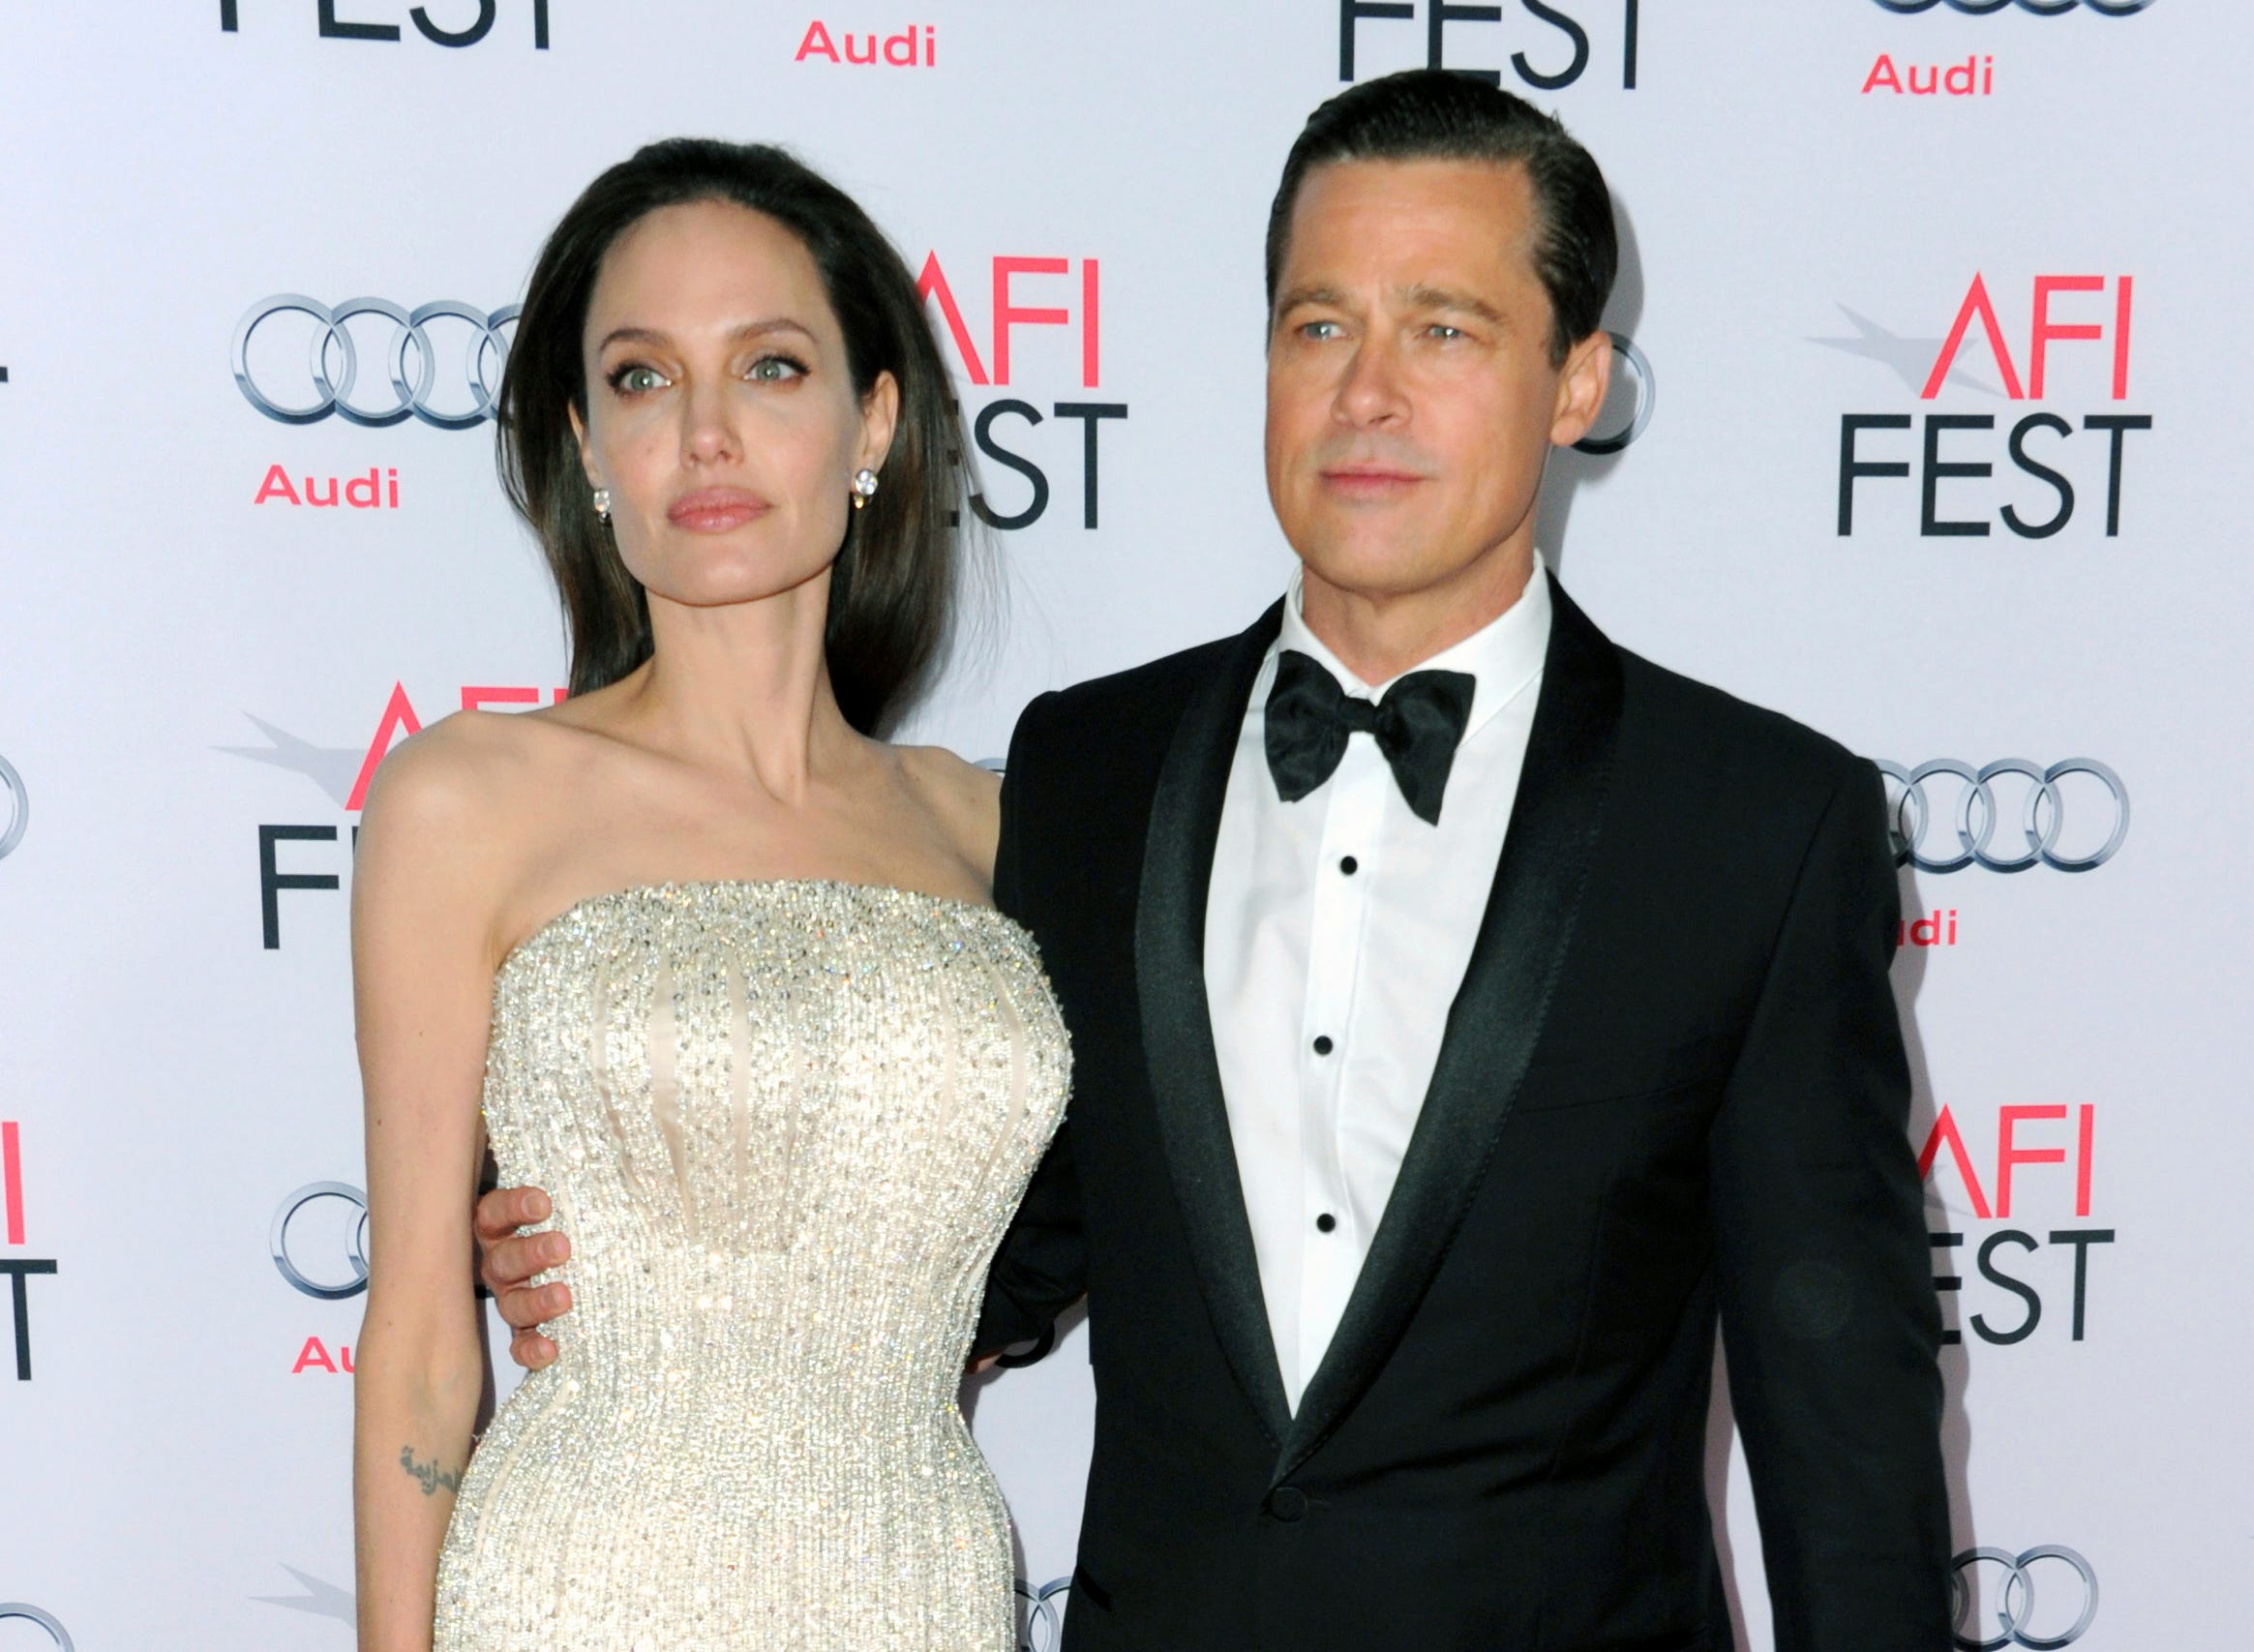 angelina-jolie-and-brad-pitt-are-now-officially-single-says-judge